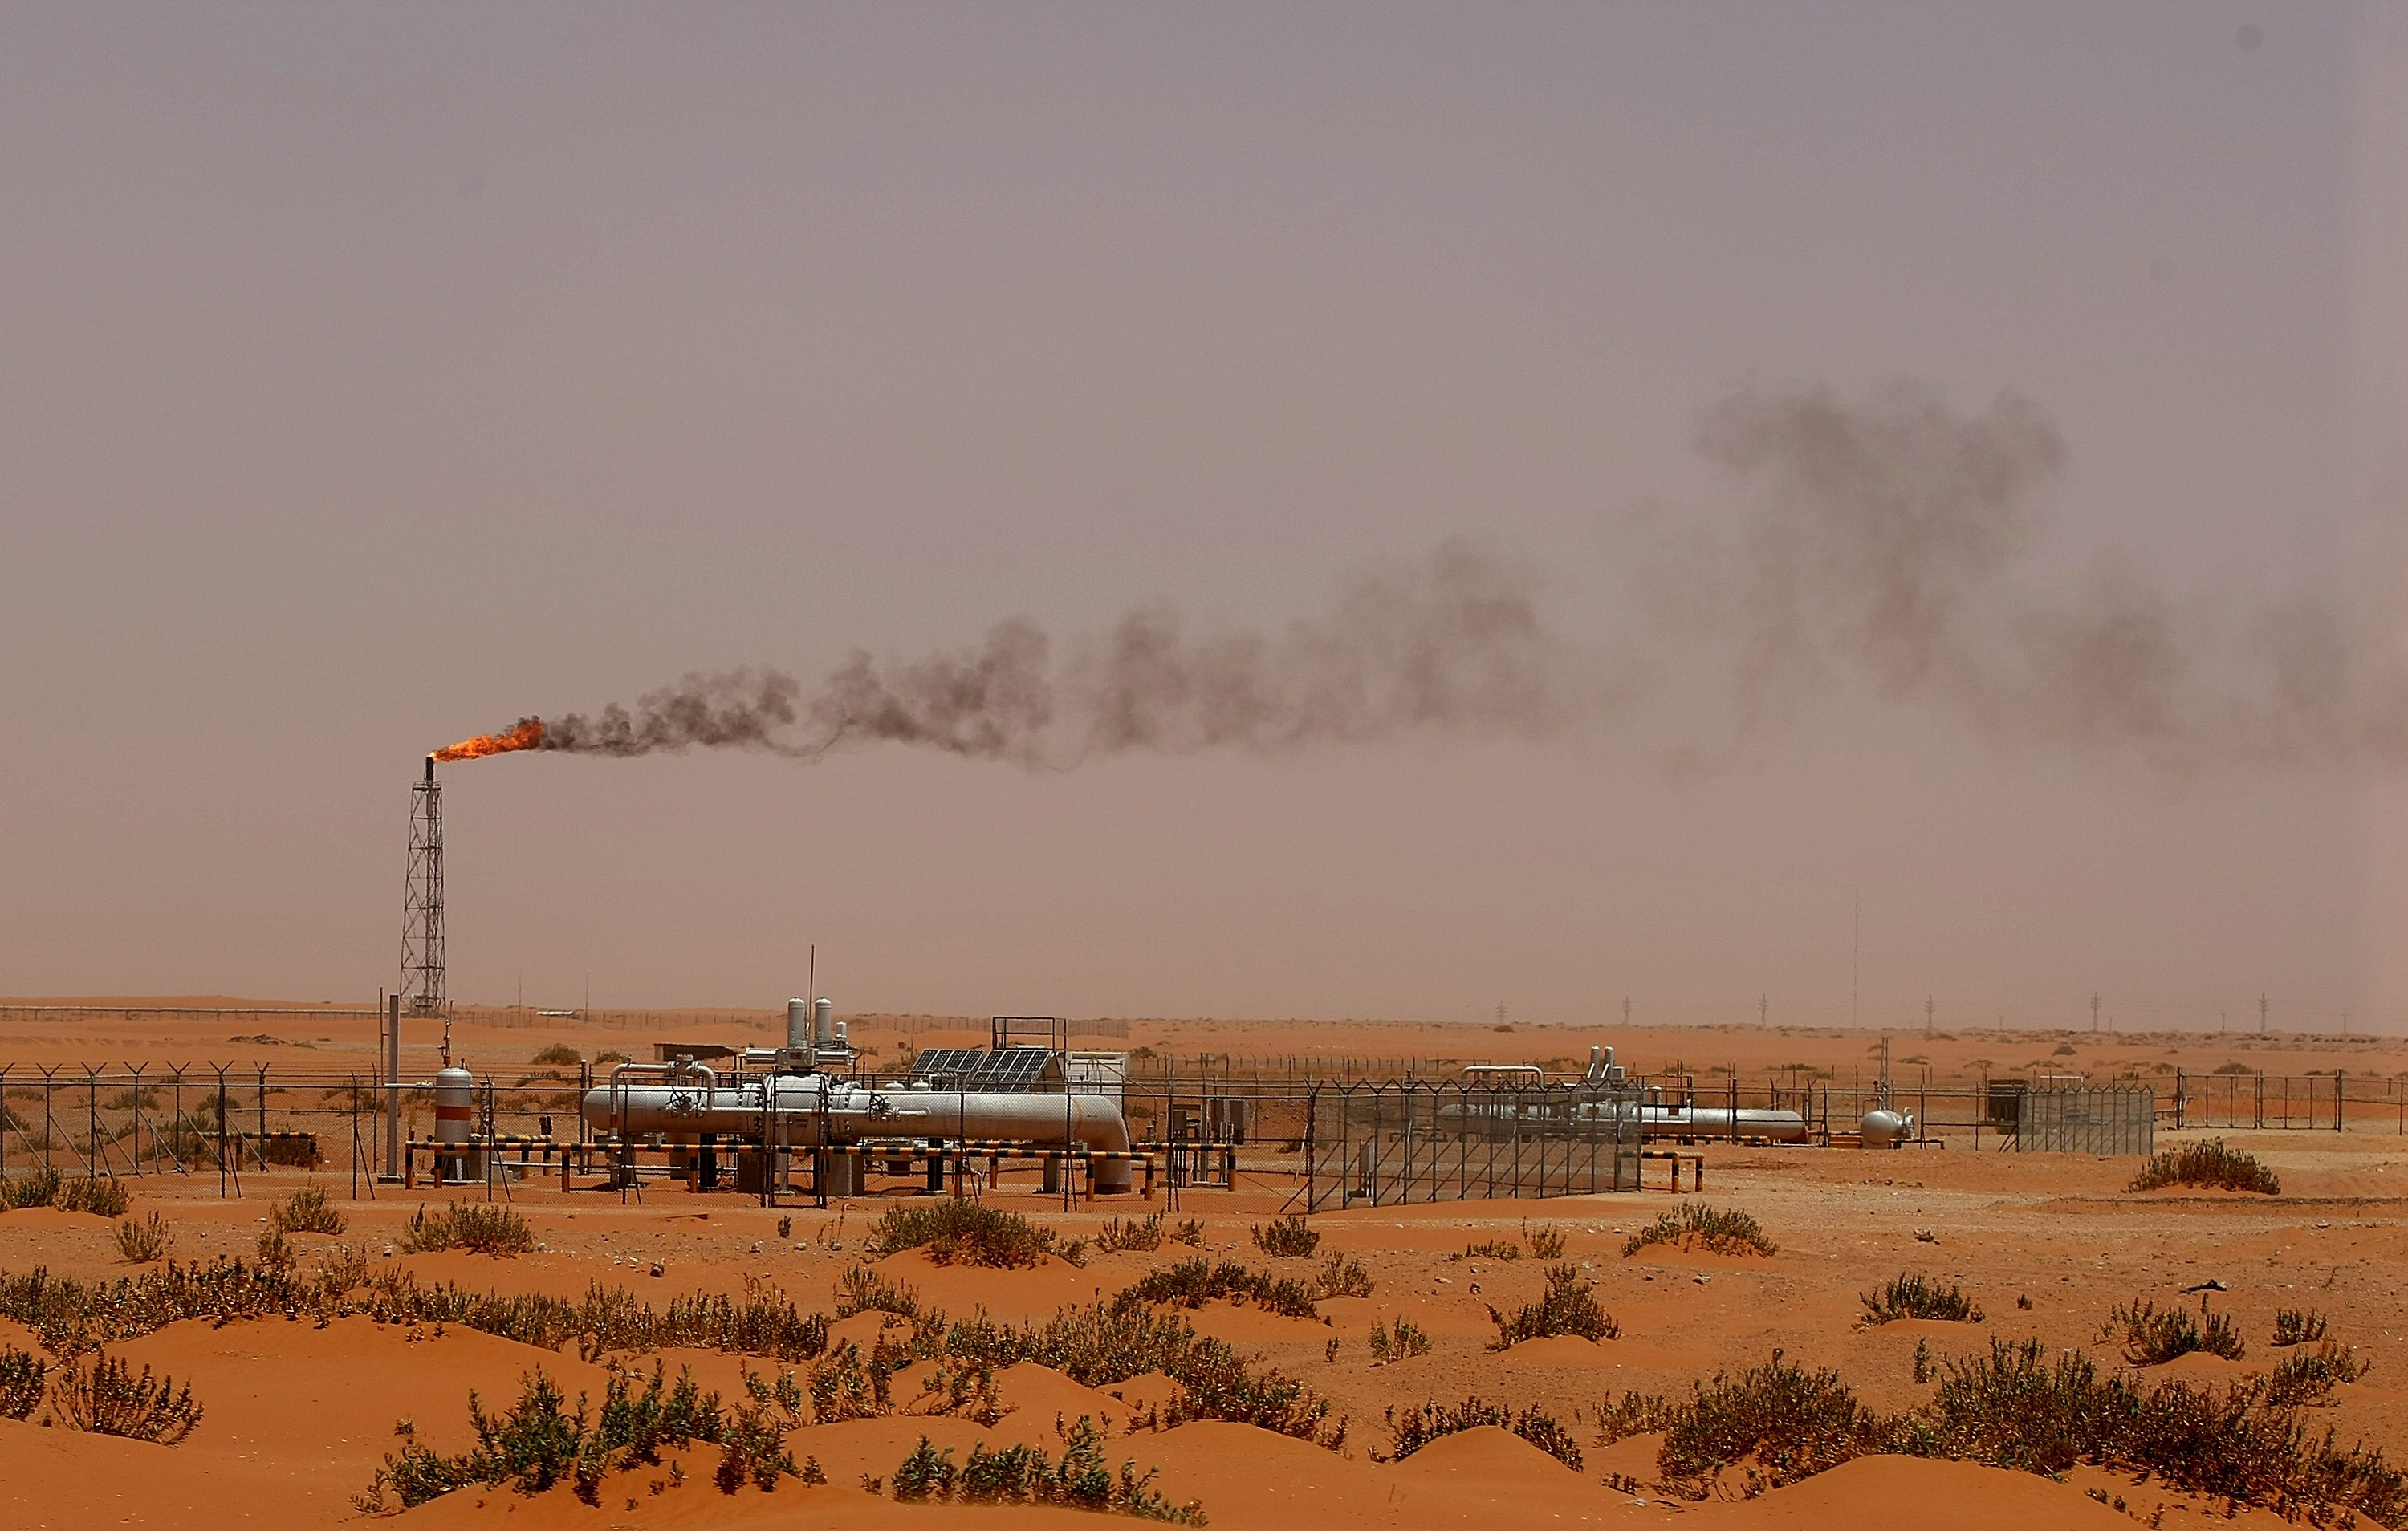 A flame from a Saudi Aramco oil installion known as  Pump 3  is seen in the desert near the oil-rich area of Khouris, 160 kms east of the Saudi capital Riyadh, on June 23, 2008.